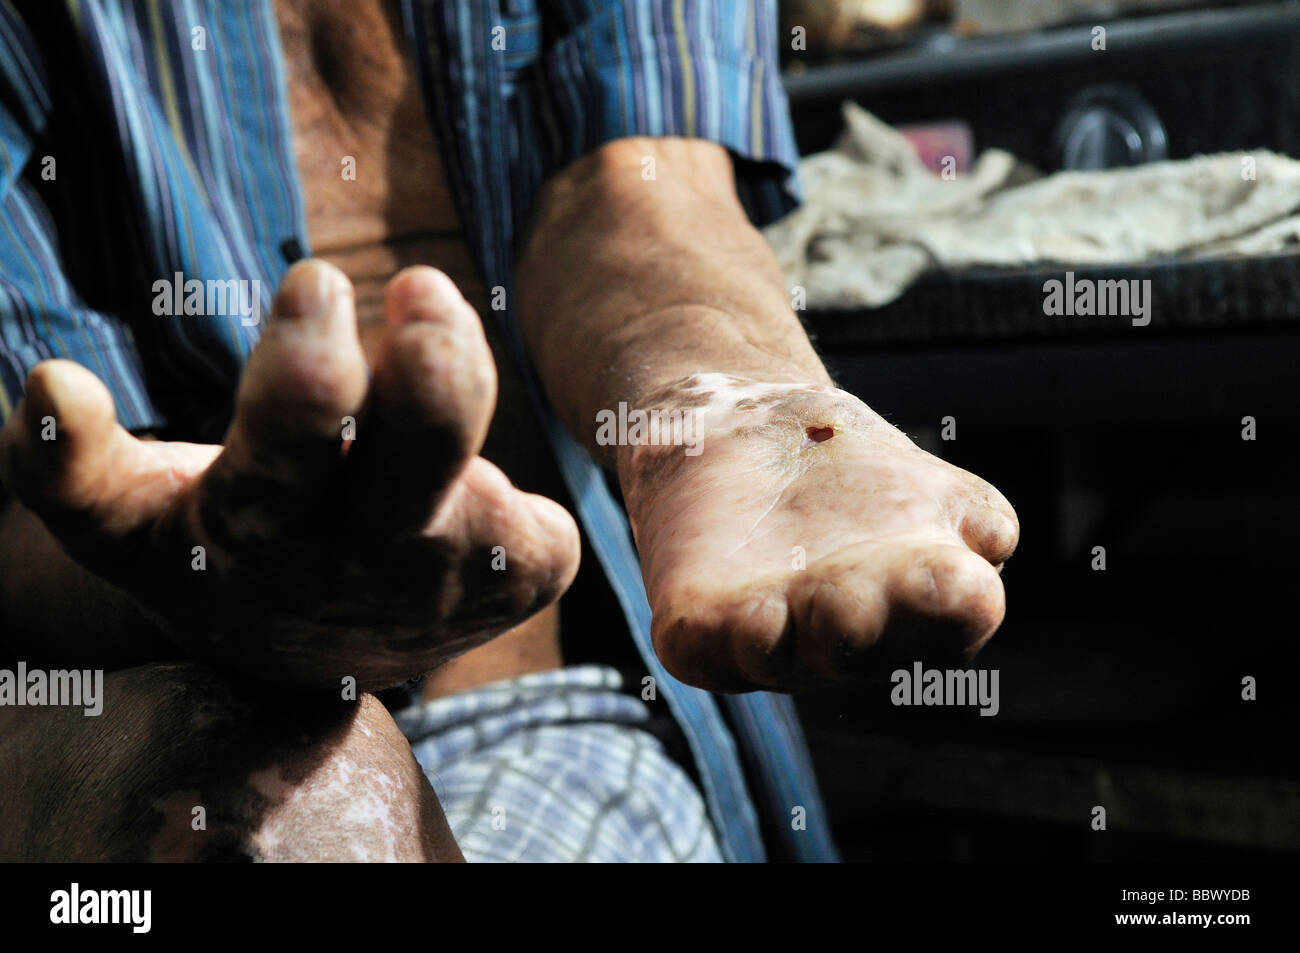 Crippled and injured hands of a leprosy patients, leprosy colony Agua de Dios, Colombia, South America - Stock Image